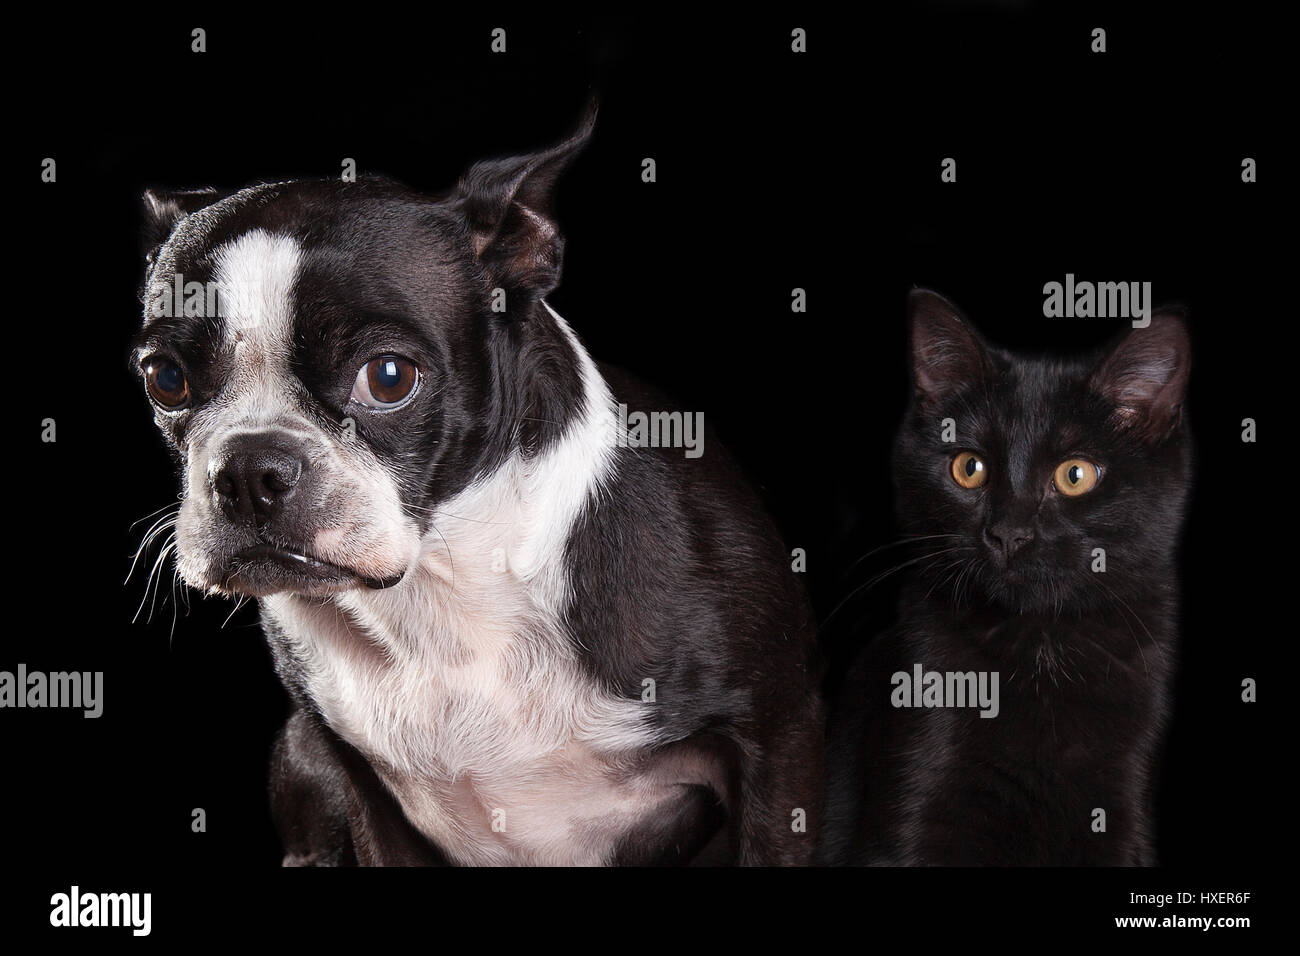 Portrait of a sad Boston terrier and a merrily happy black cat isolated on a black background - Stock Image